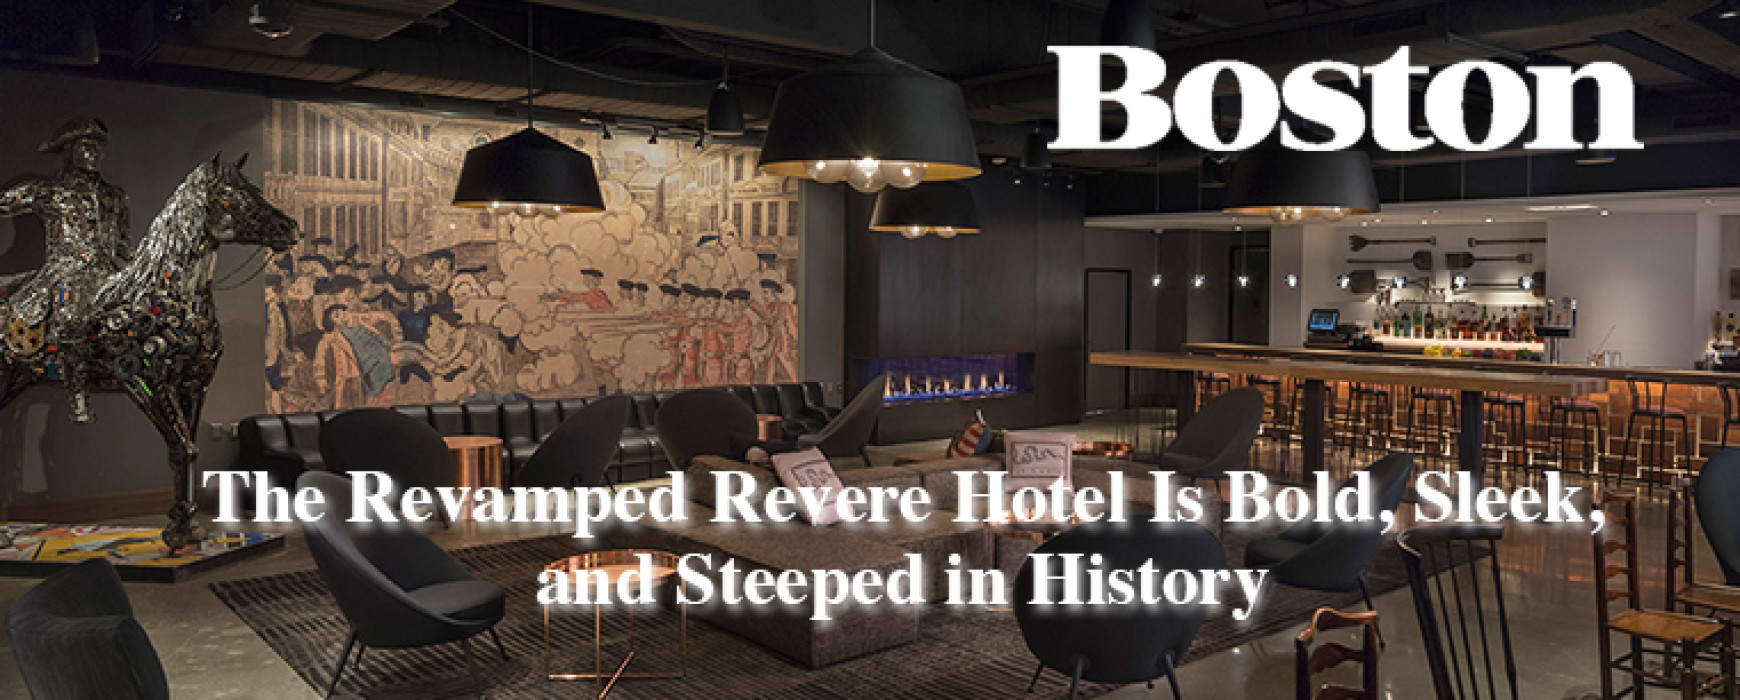 The Revamped Revere Hotel Is Bold, Sleek, and Steeped in History